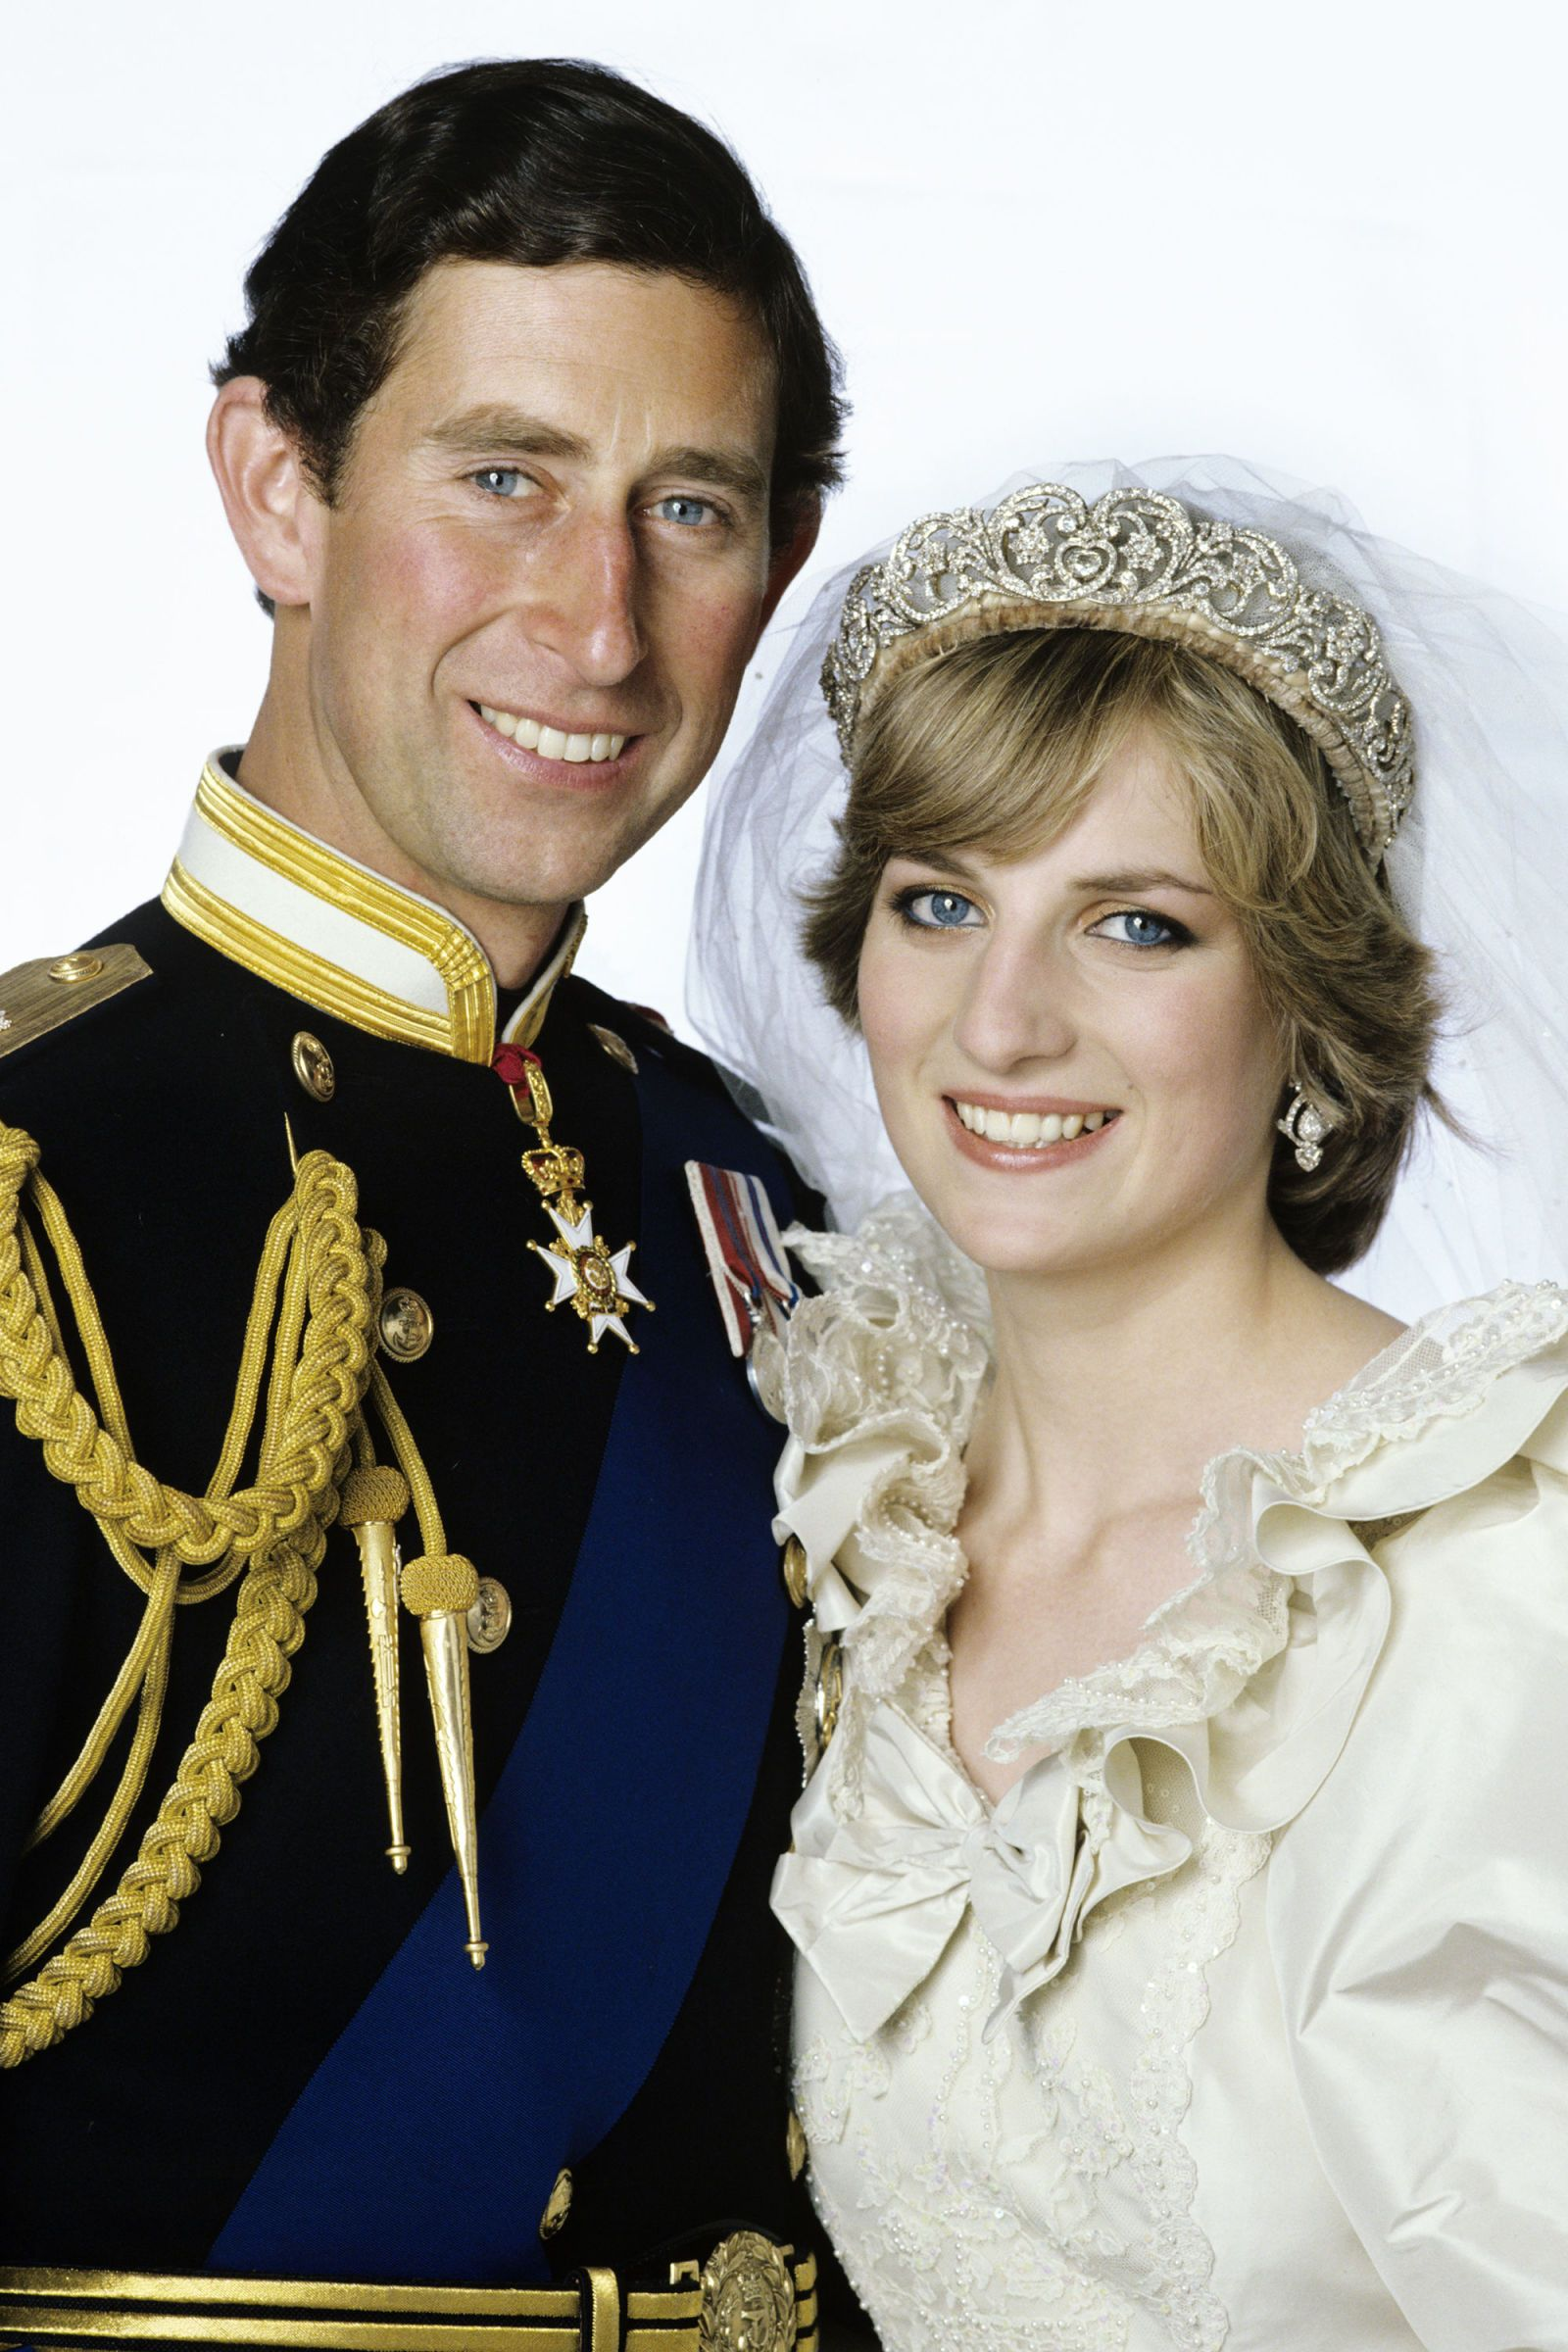 Prince Charles And Princess Diana S Formal Wedding Portrait Taken After The Ceremony At Buckingham Palace